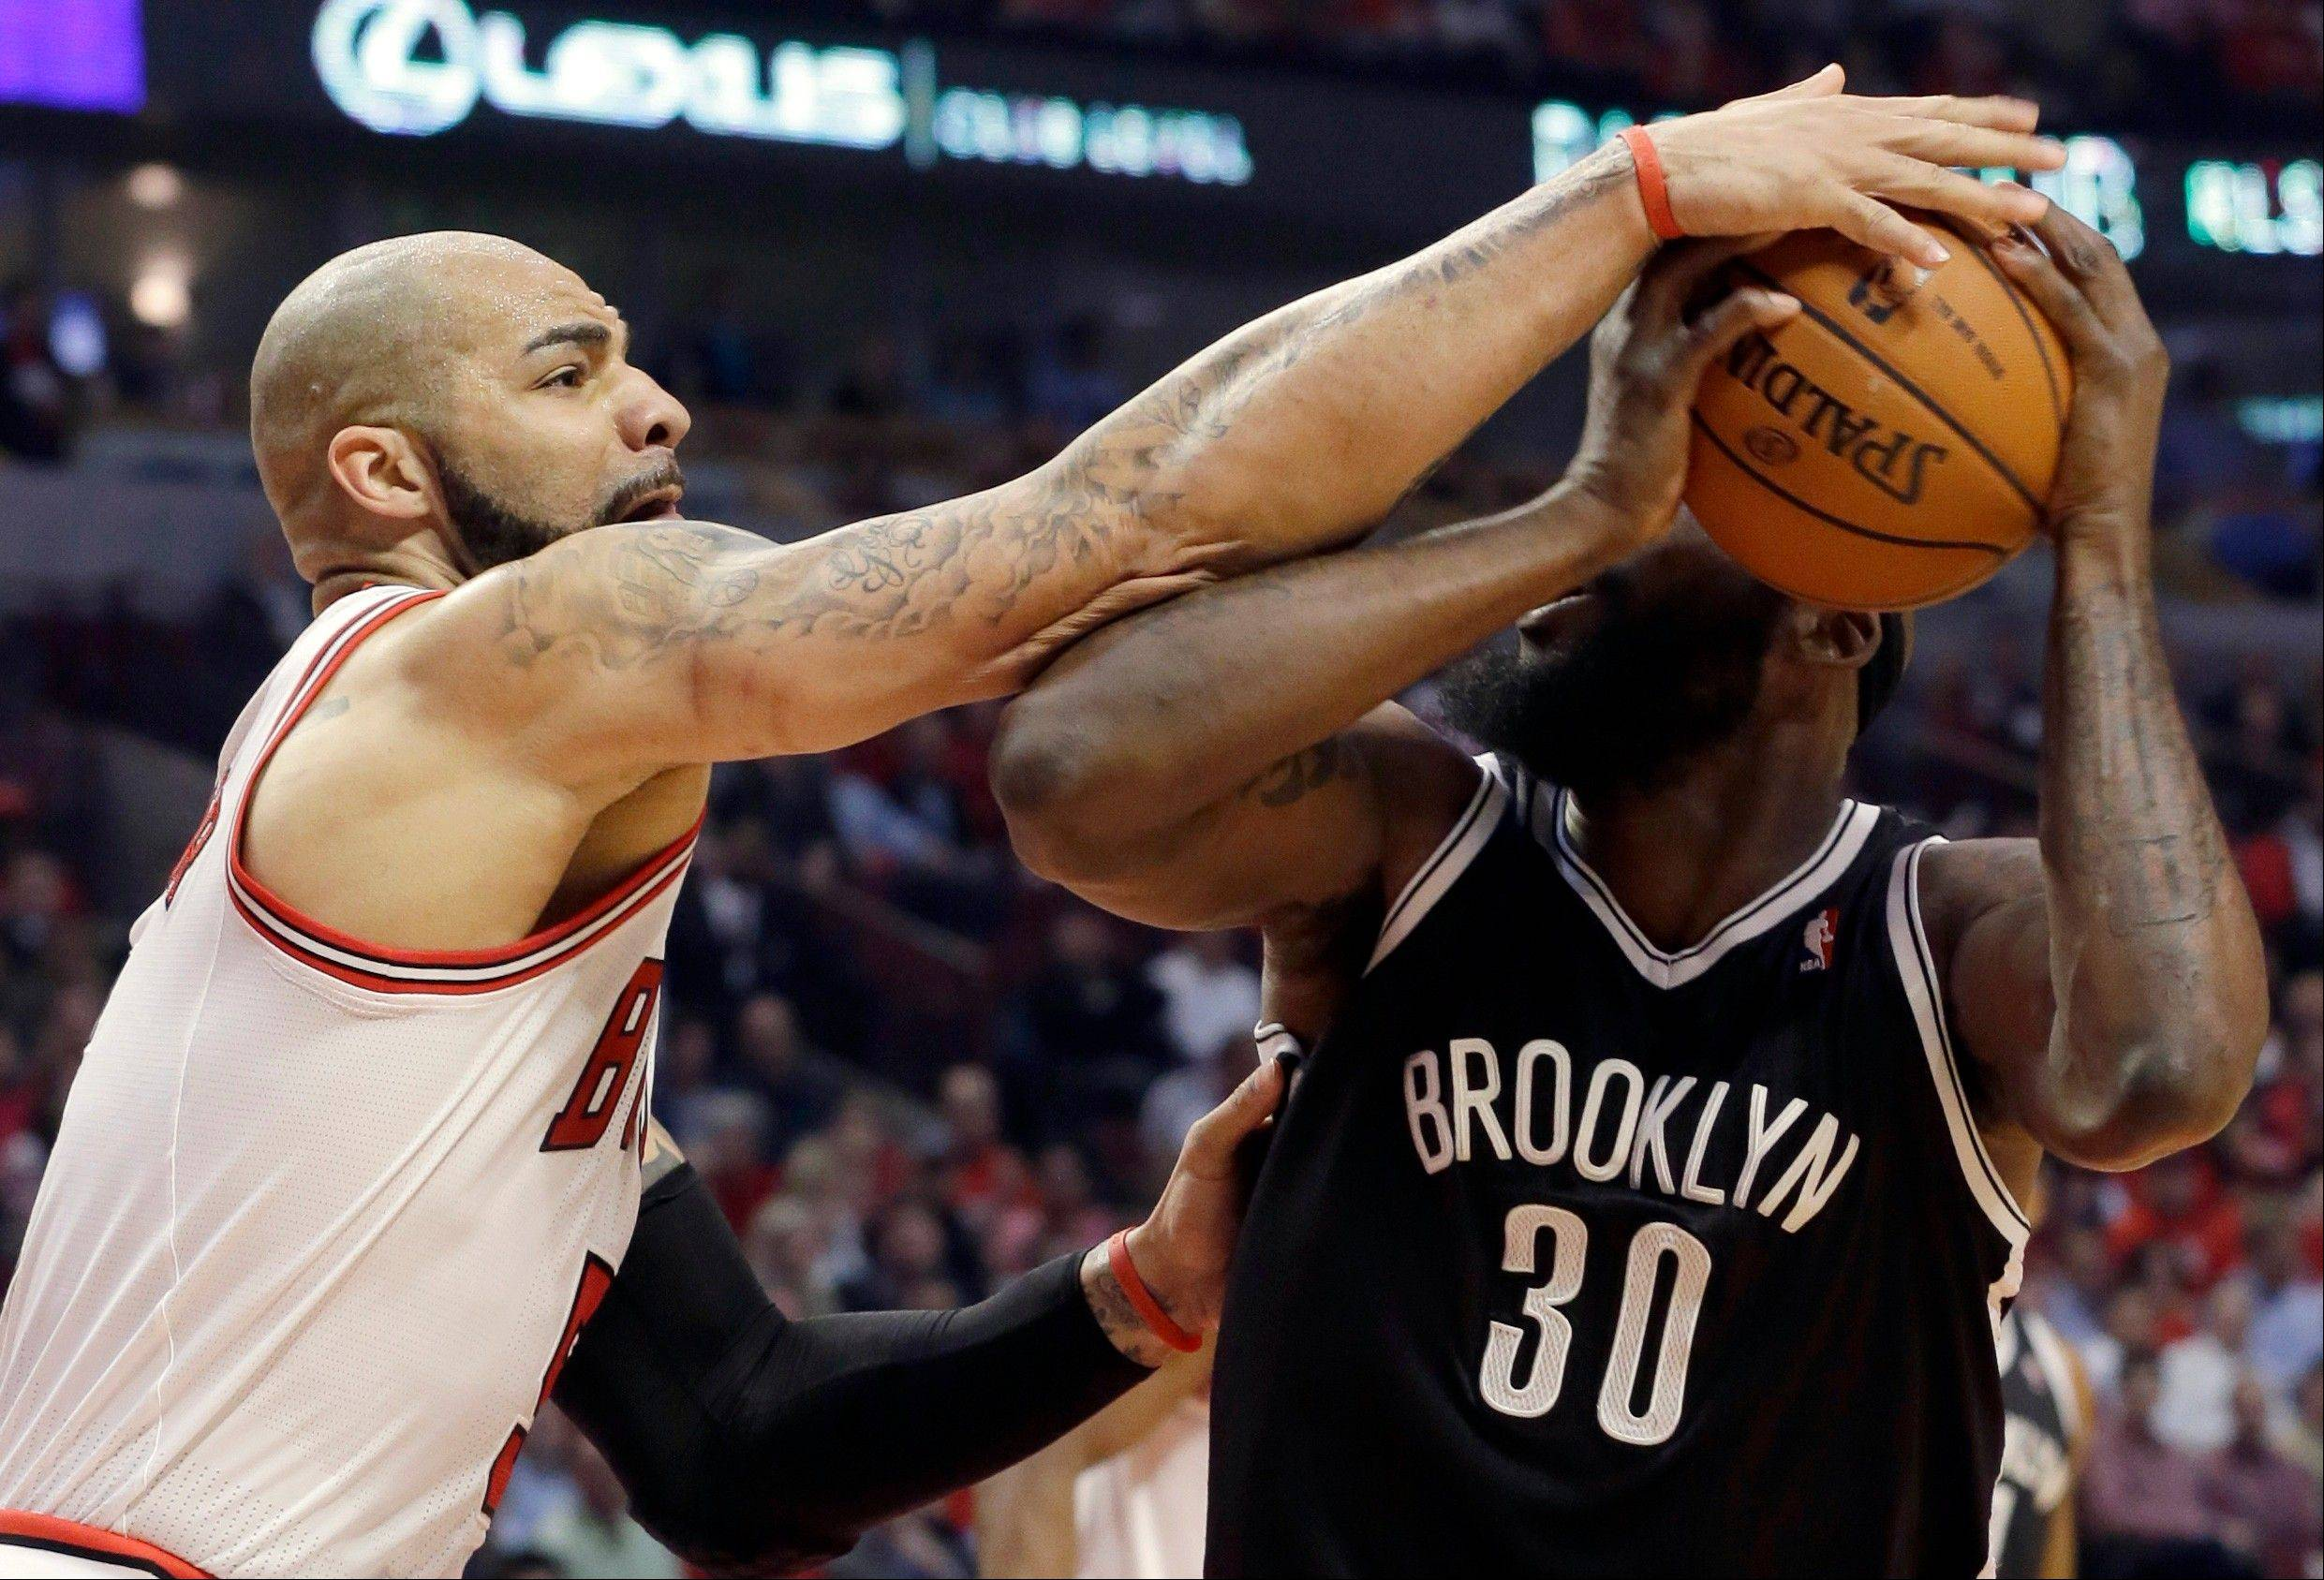 Bulls forward Carlos Boozer, left, defends against Brooklyn Nets forward Reggie Evans during the first half in Game 6 of their first-round NBA basketball playoff series in Chicago Thursday.